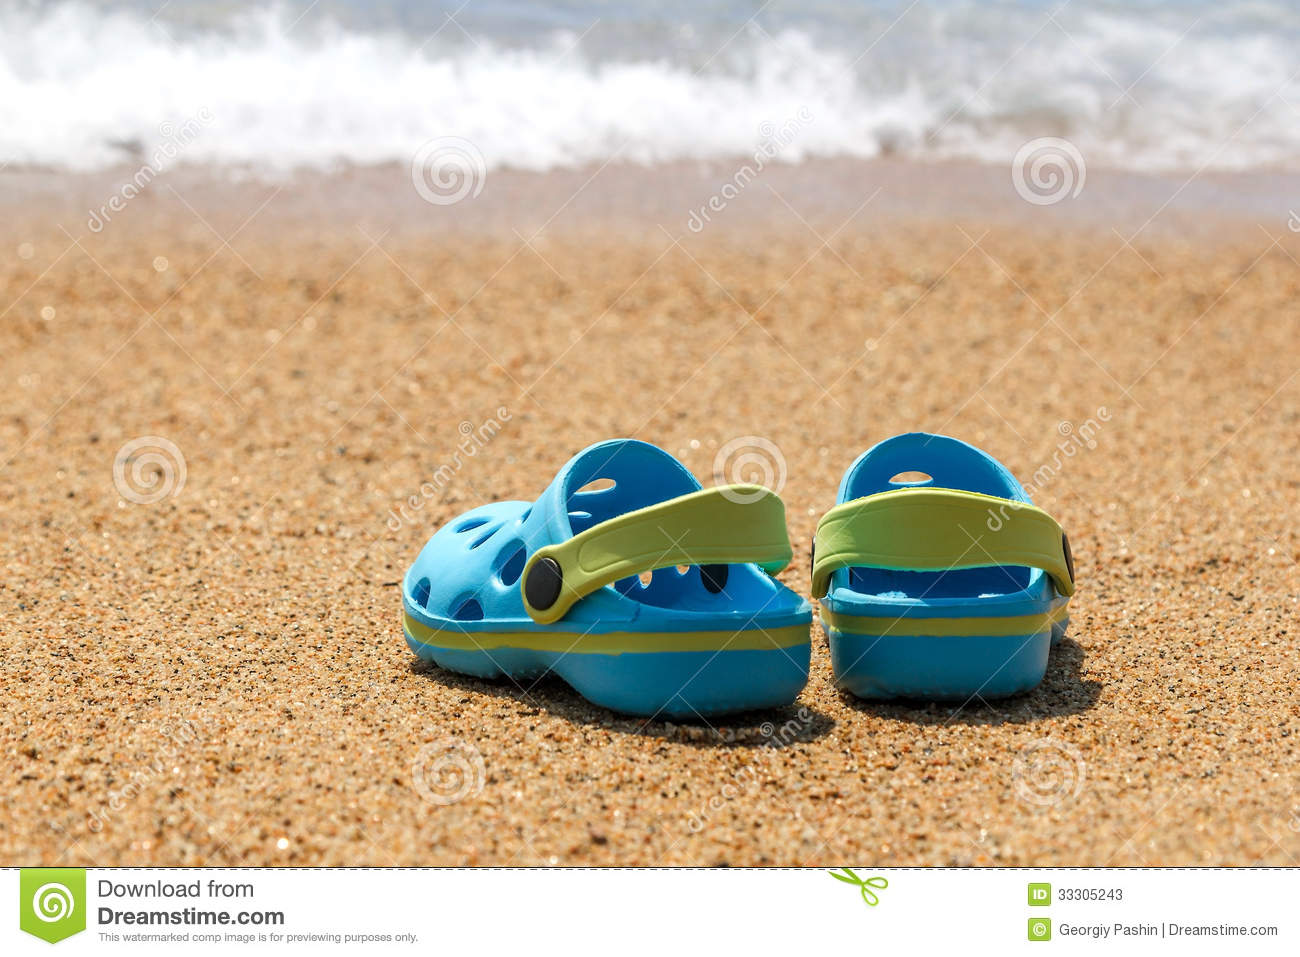 017921ed2 Blue Sandals Slippers On The Sand Stock Image - Image of locations ...